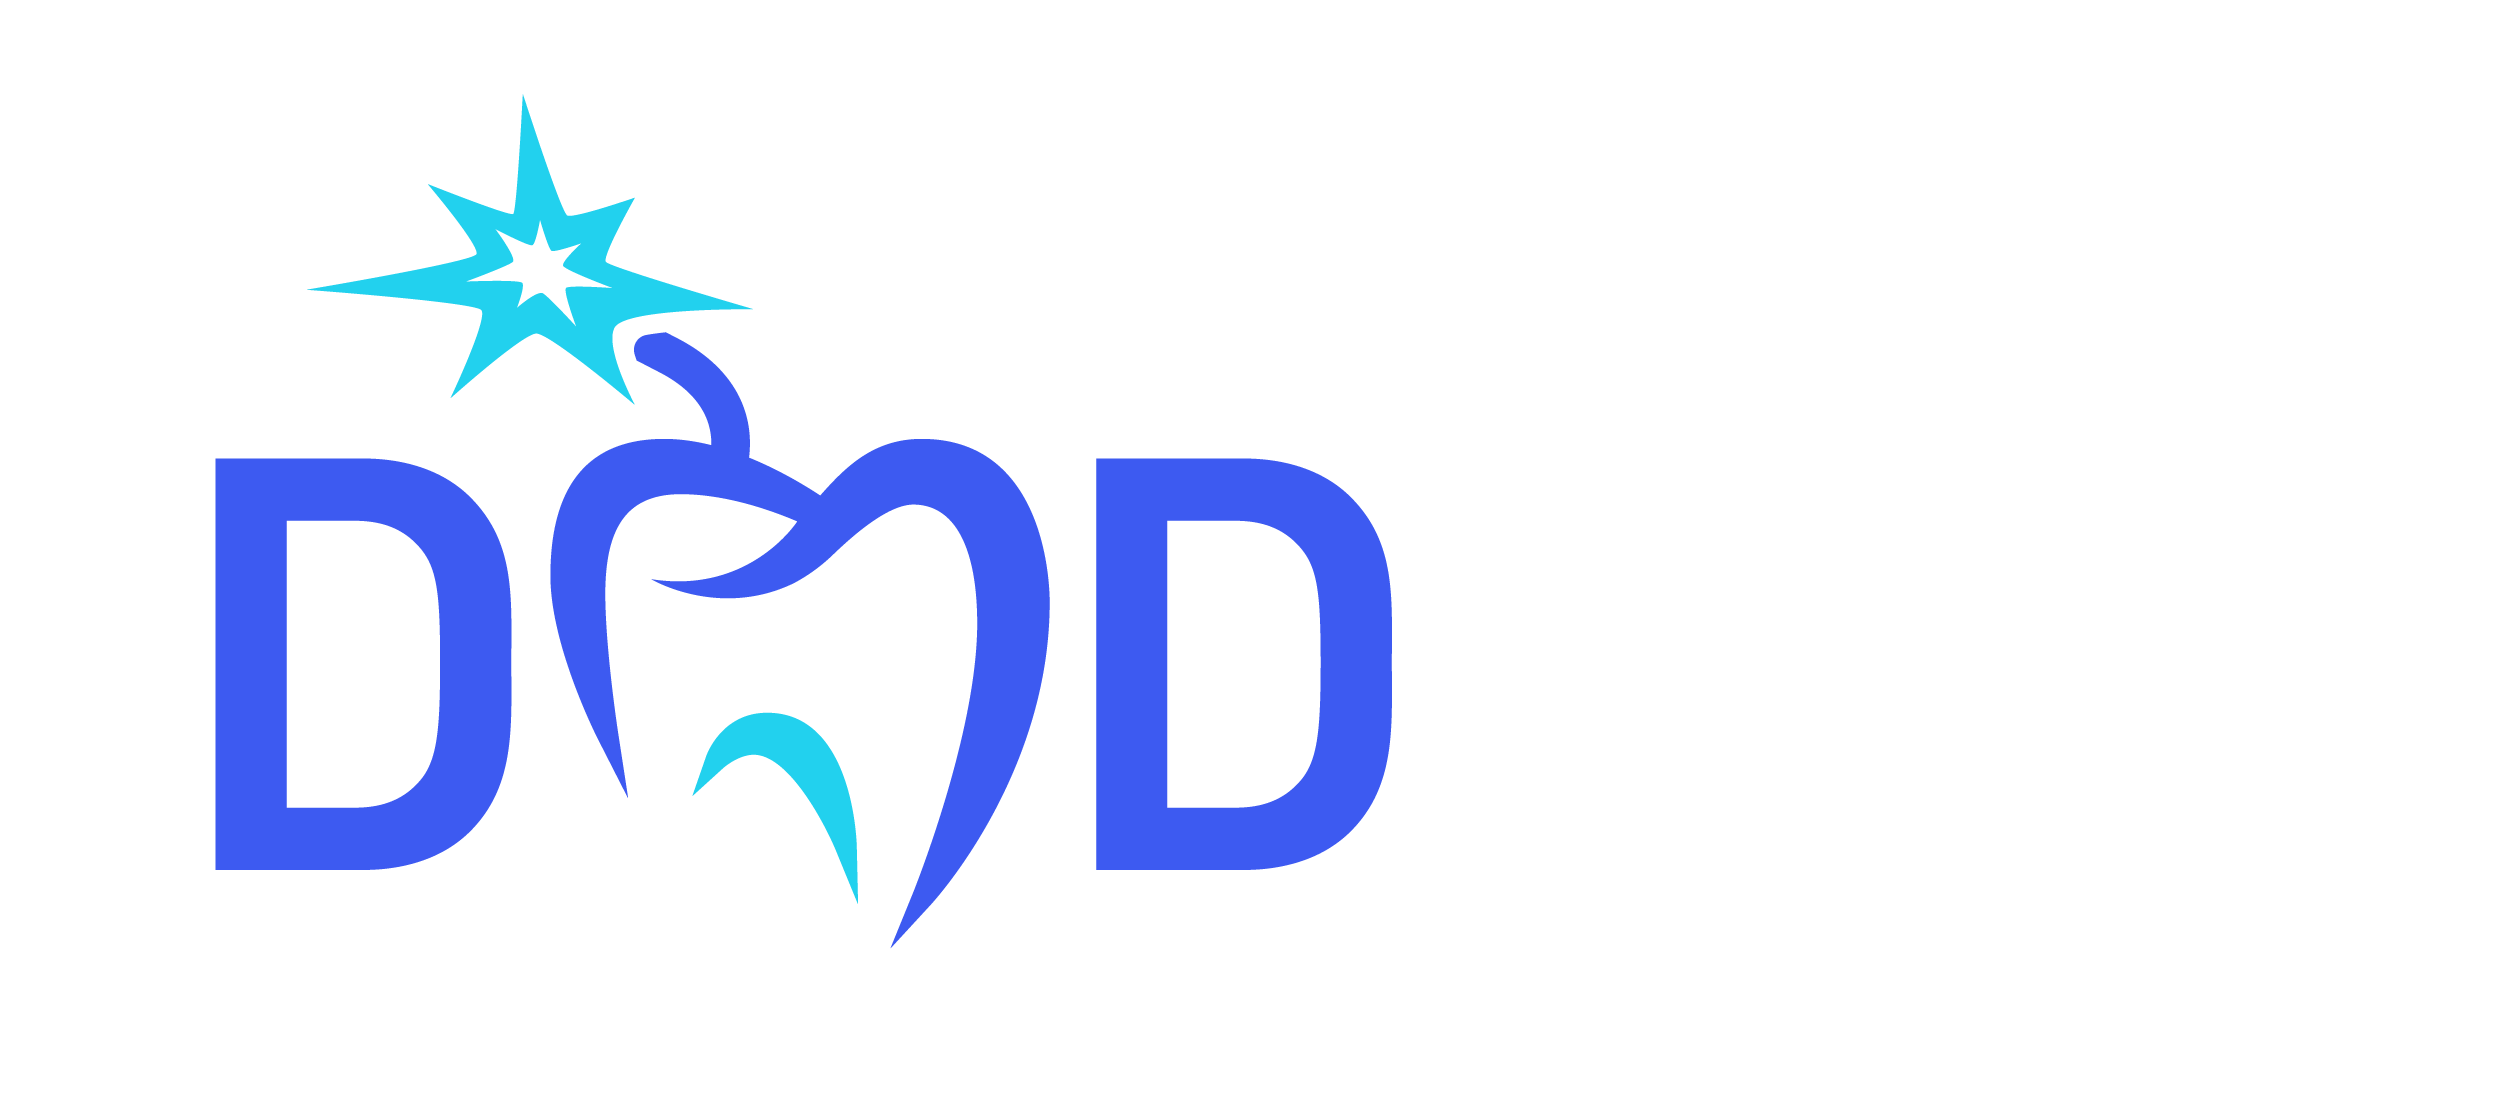 Dental Marketing Dynamite